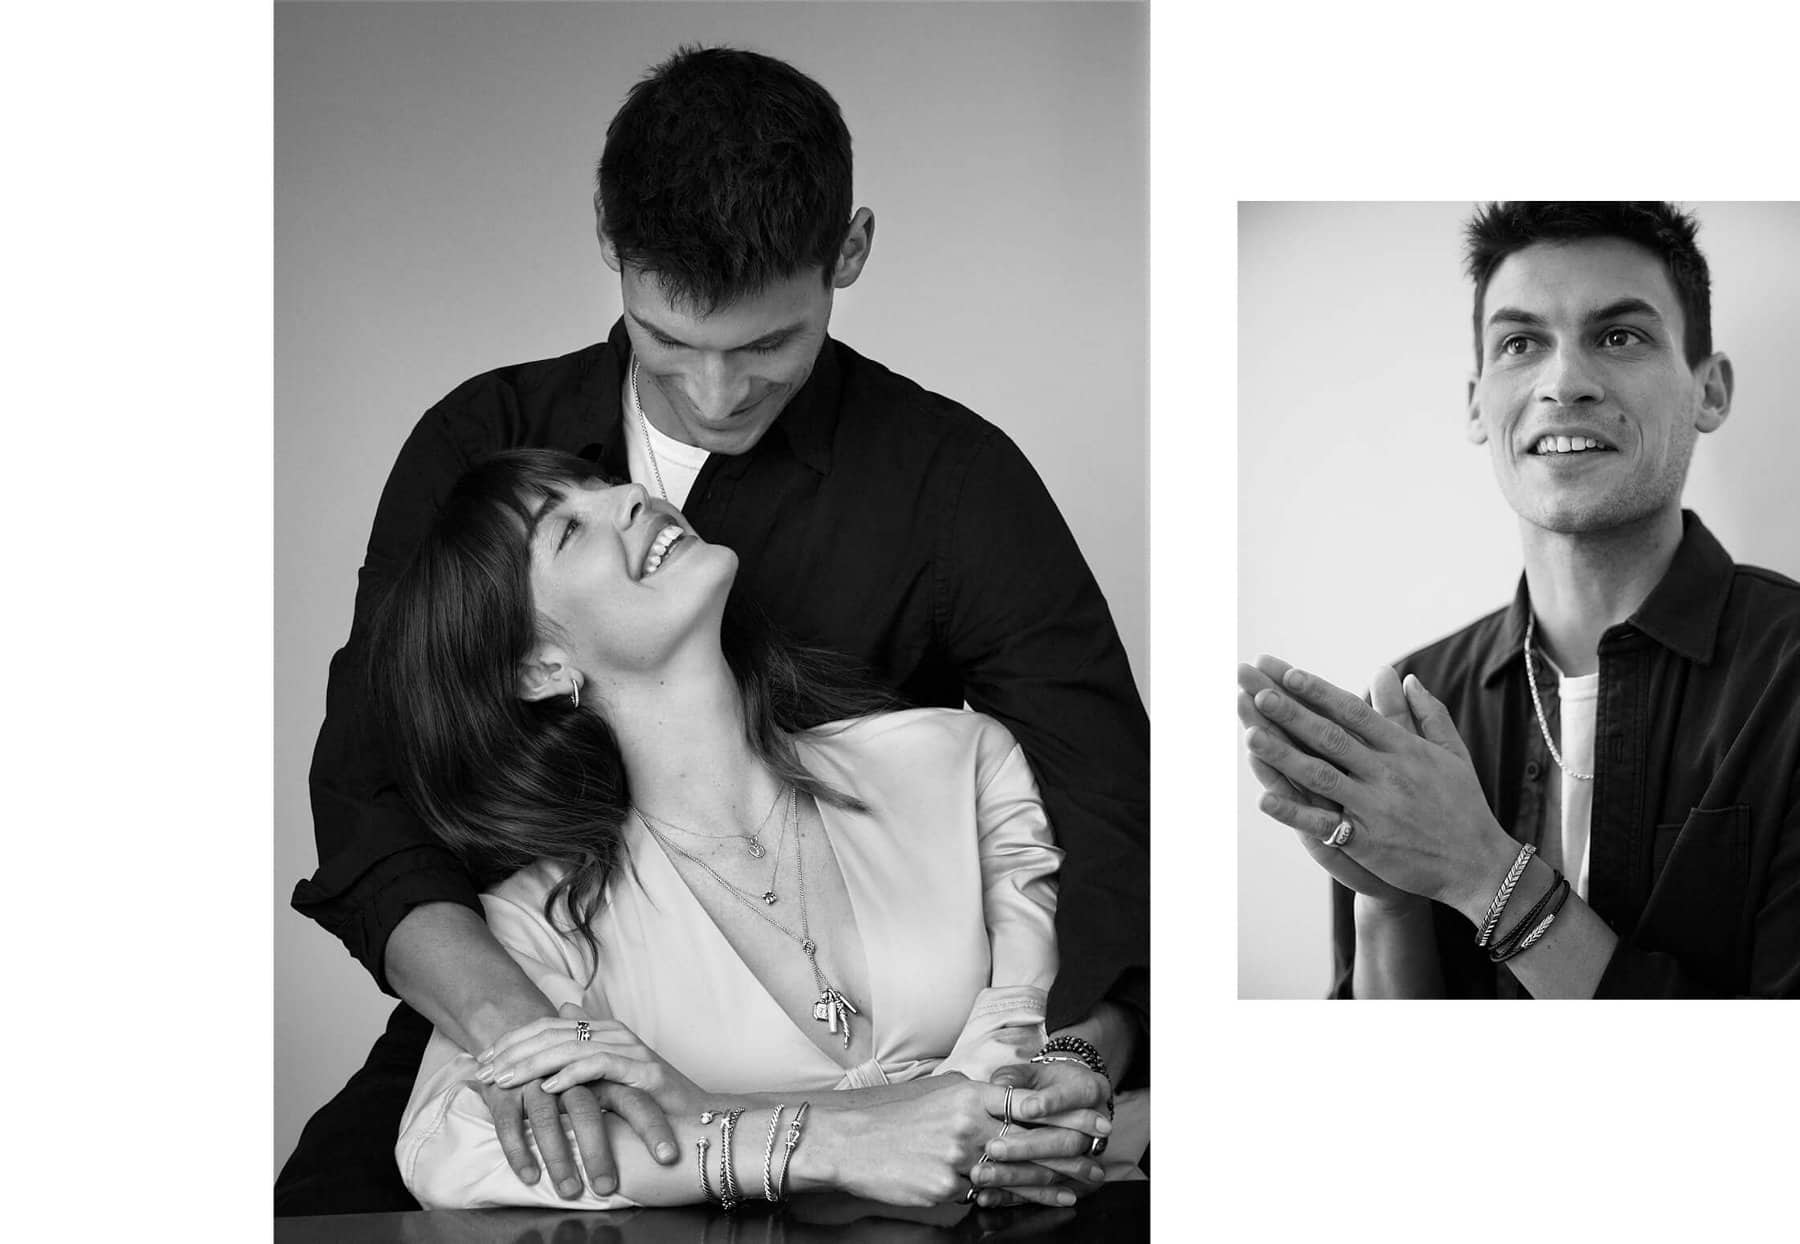 A collage of a color video and two black-and-white photos are arranged in a row on a white background. The video and portraits feature the same male and female model from above wearing various David Yurman jewelry designs.